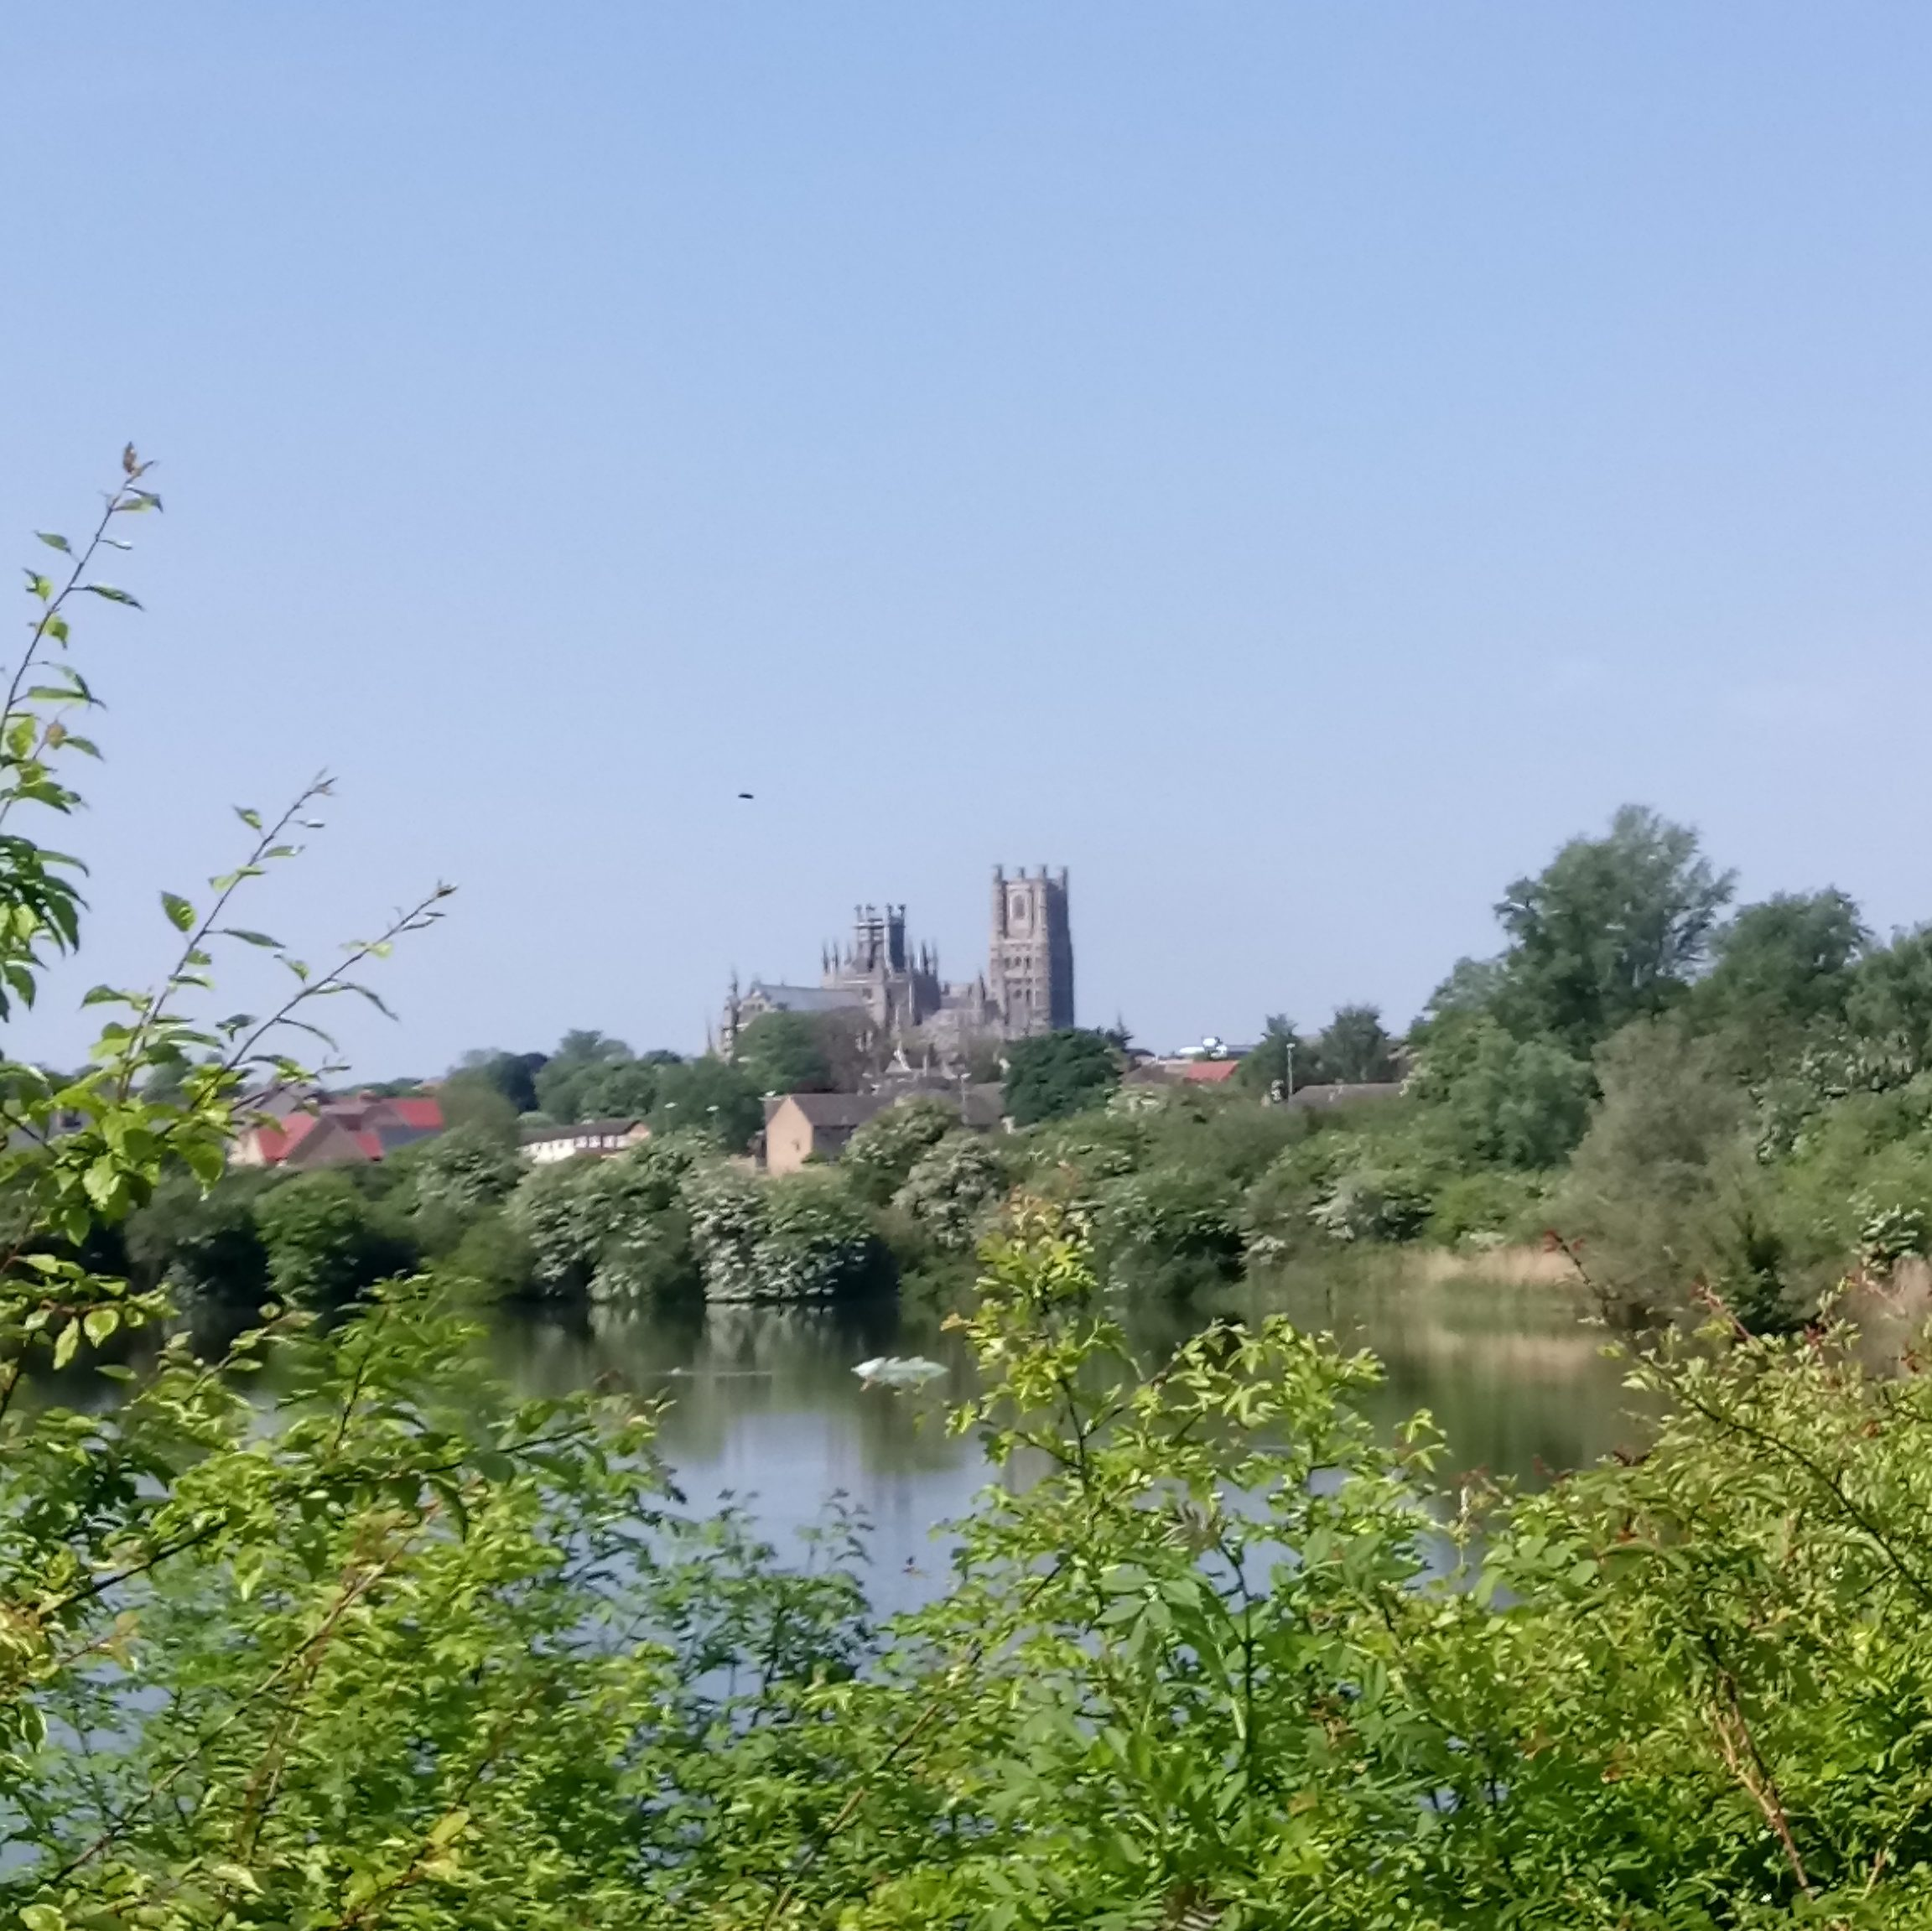 Cathedral seen across an expanse of water, with green bushes in the foreground